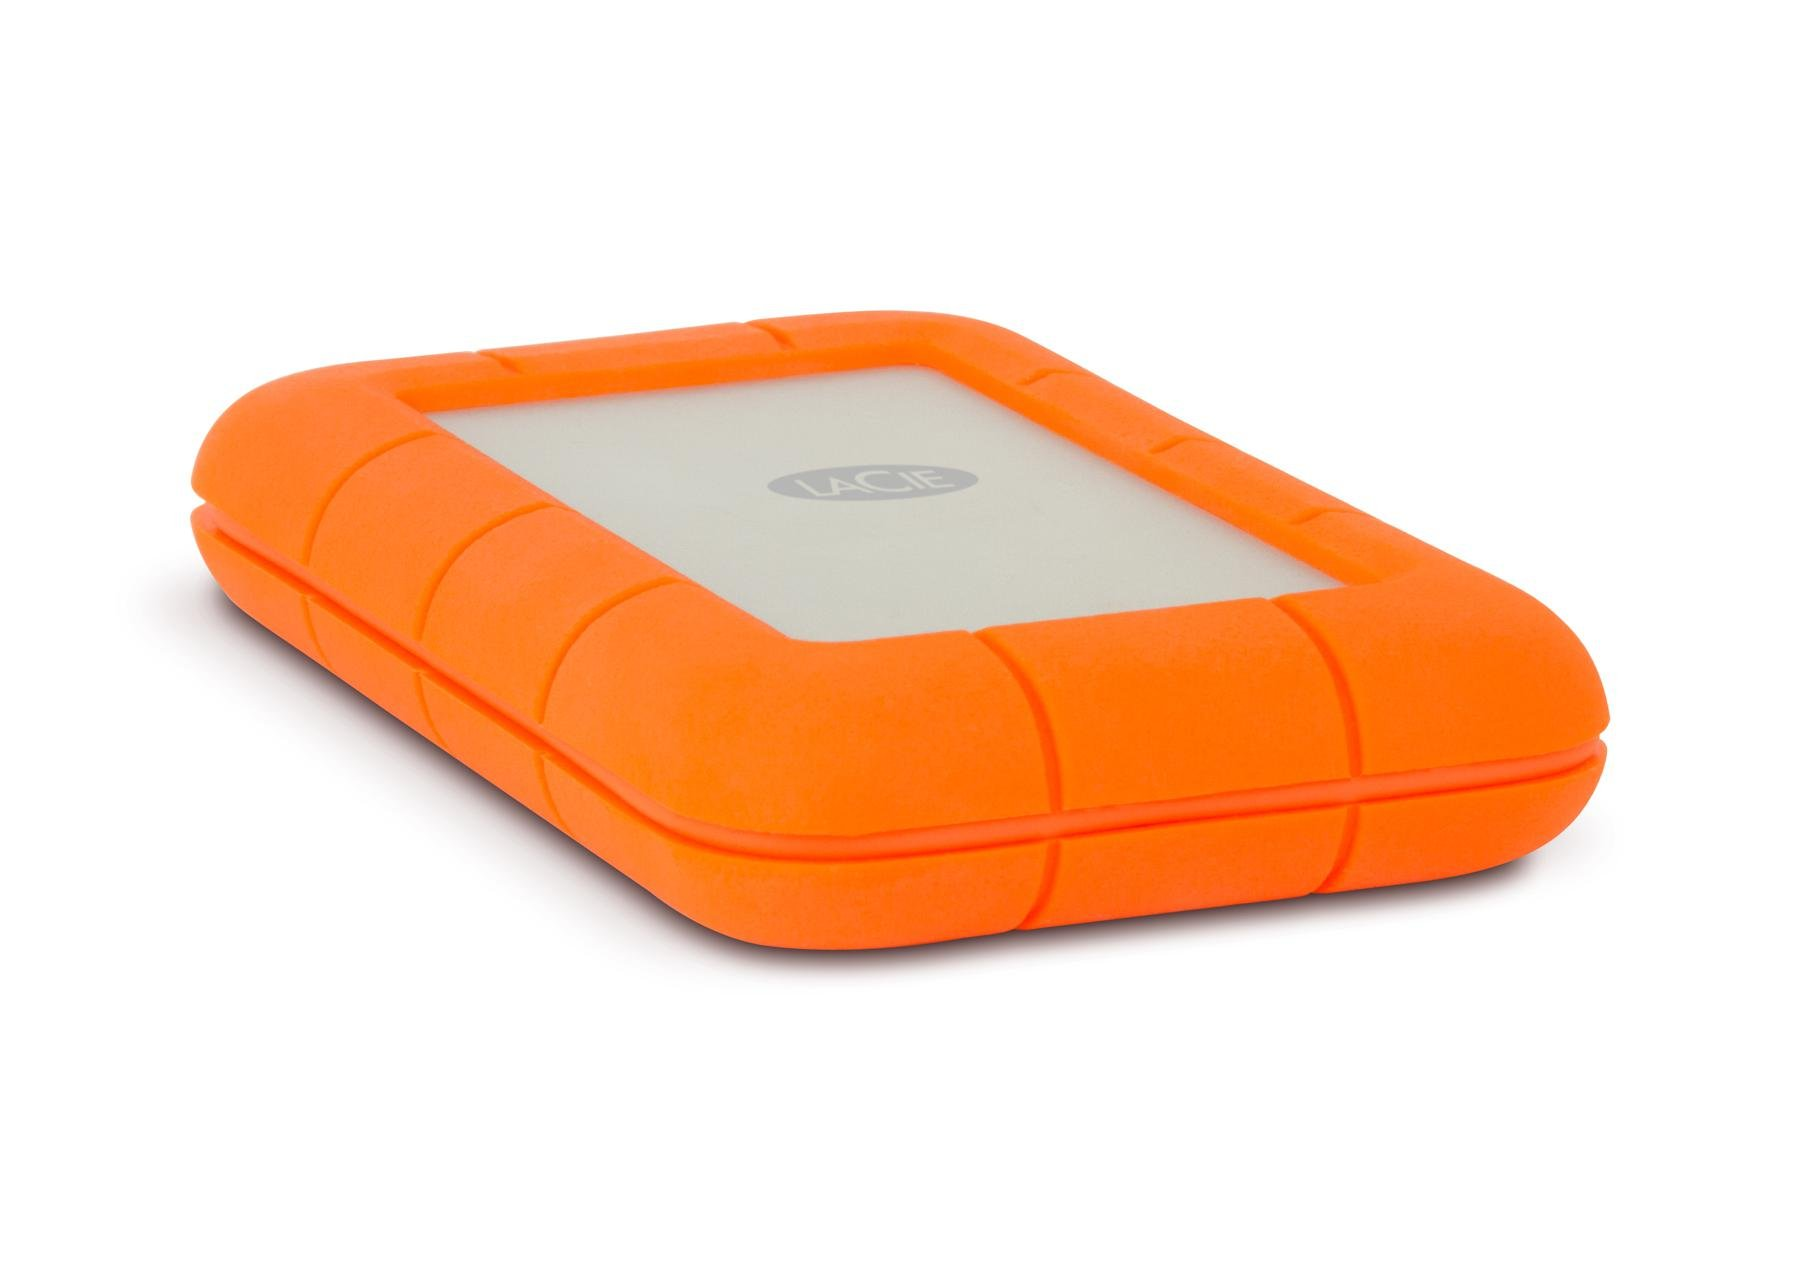 Image result for Portable Hard Drive